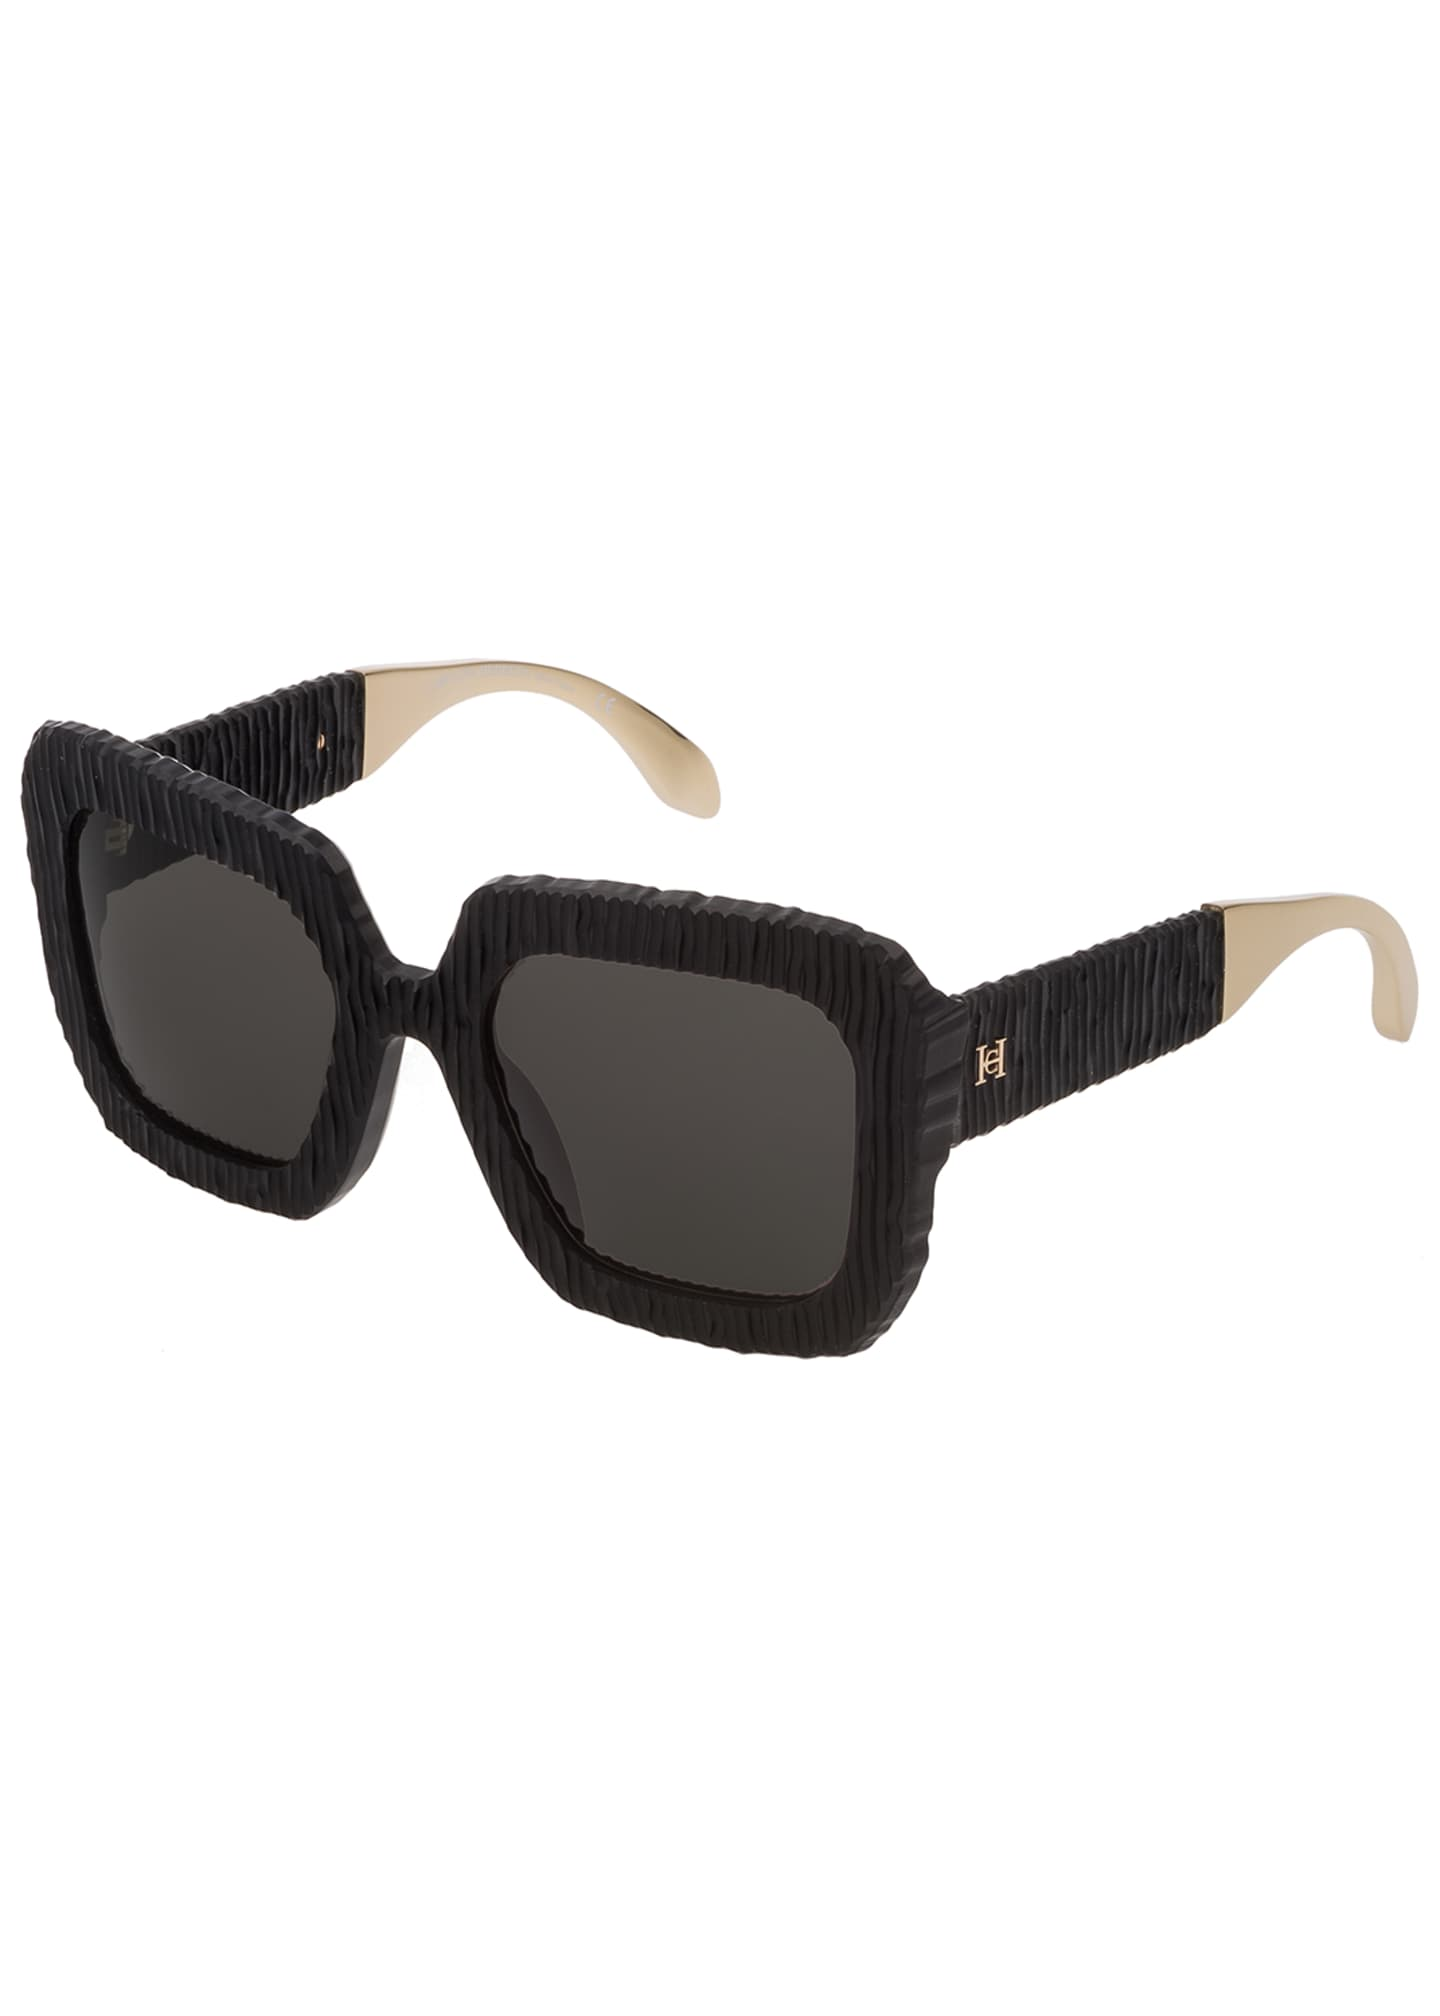 Carolina Herrera Square Textured Acetate Sunglasses